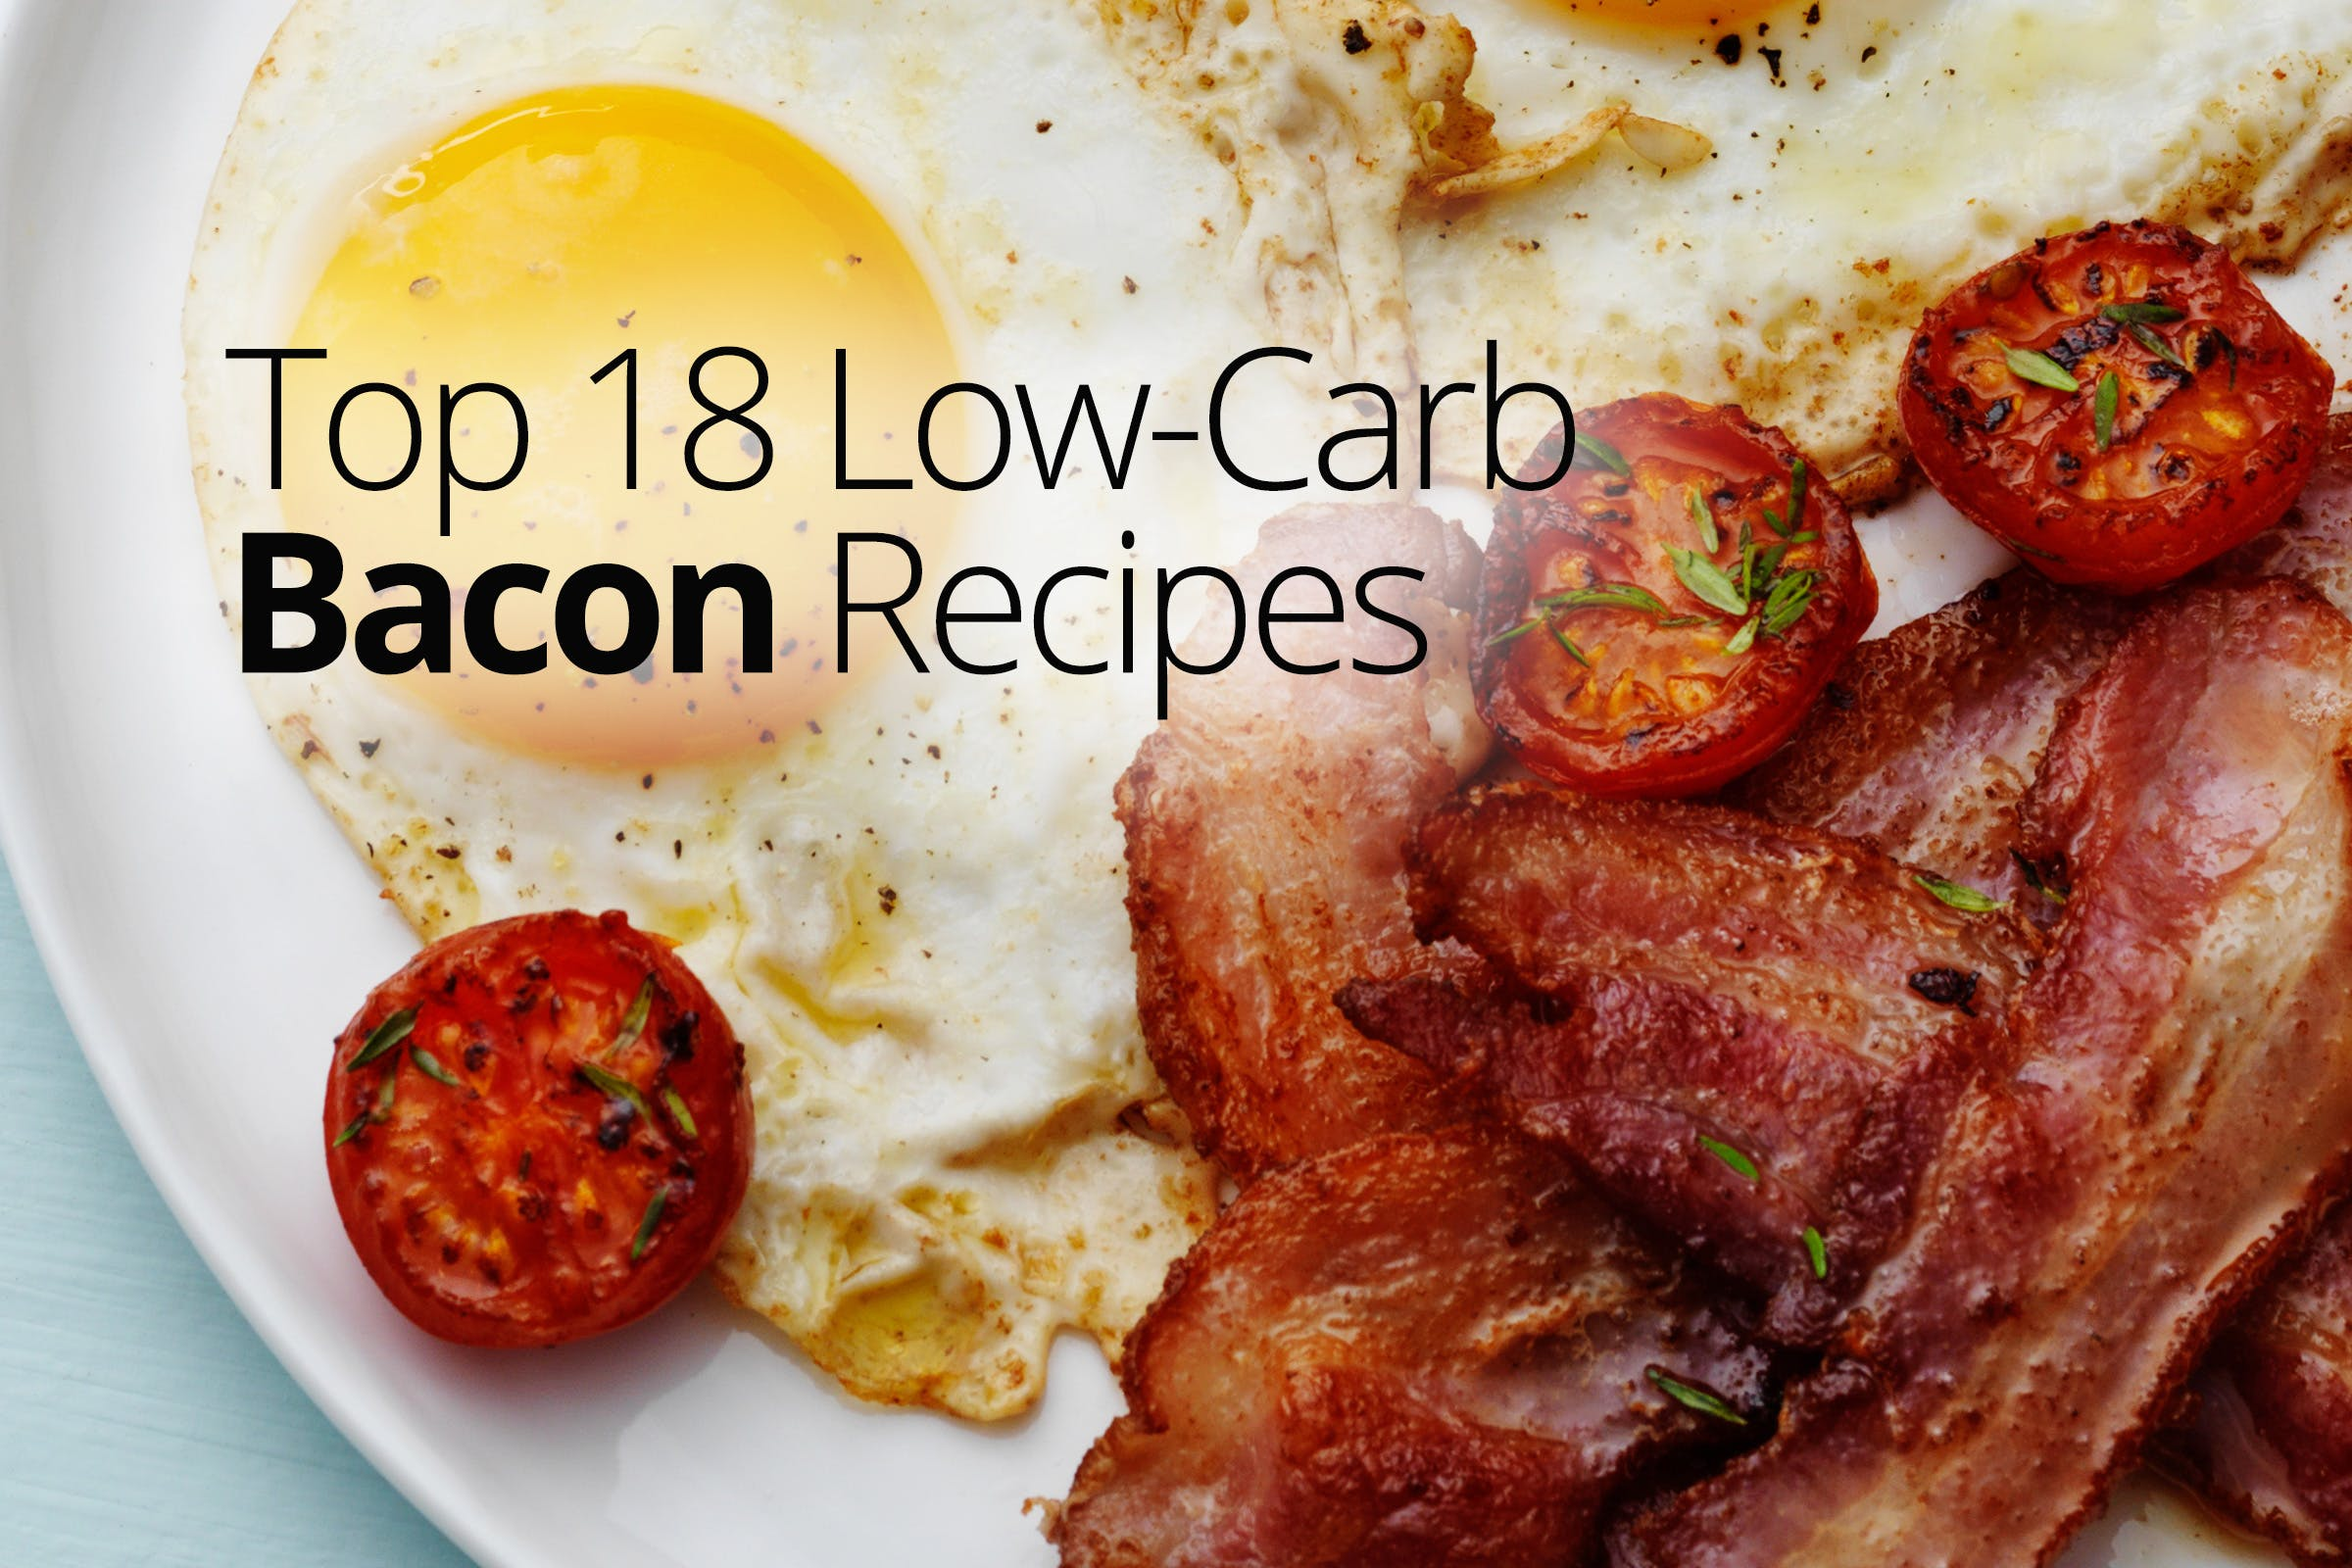 Low-carb bacon recipes